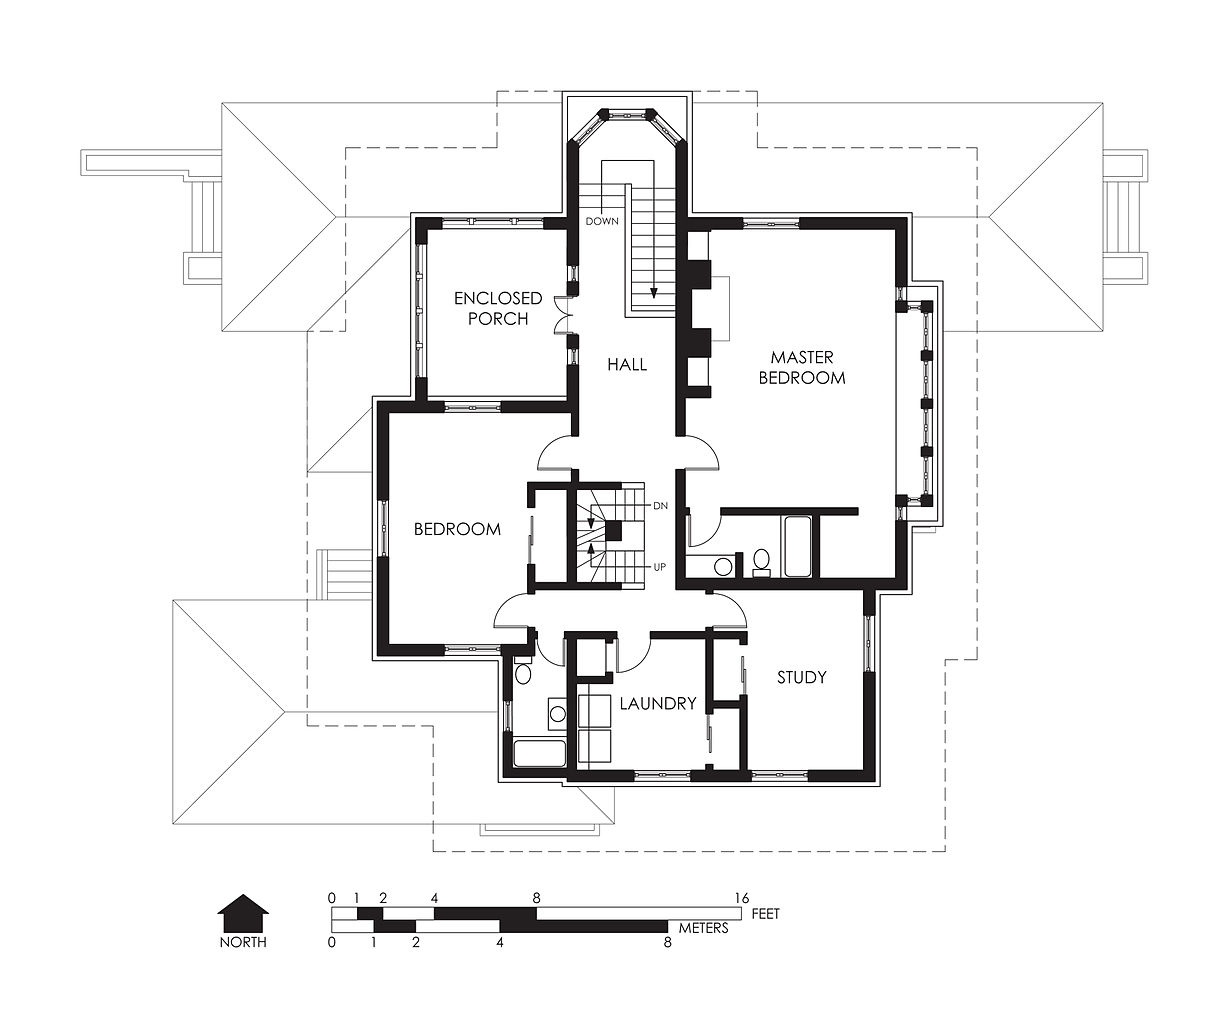 Second Floor Floor Plans floor plan to 2nd floor home addition in bethesda maryland Filehills Decaro House Second Floor Planjpg